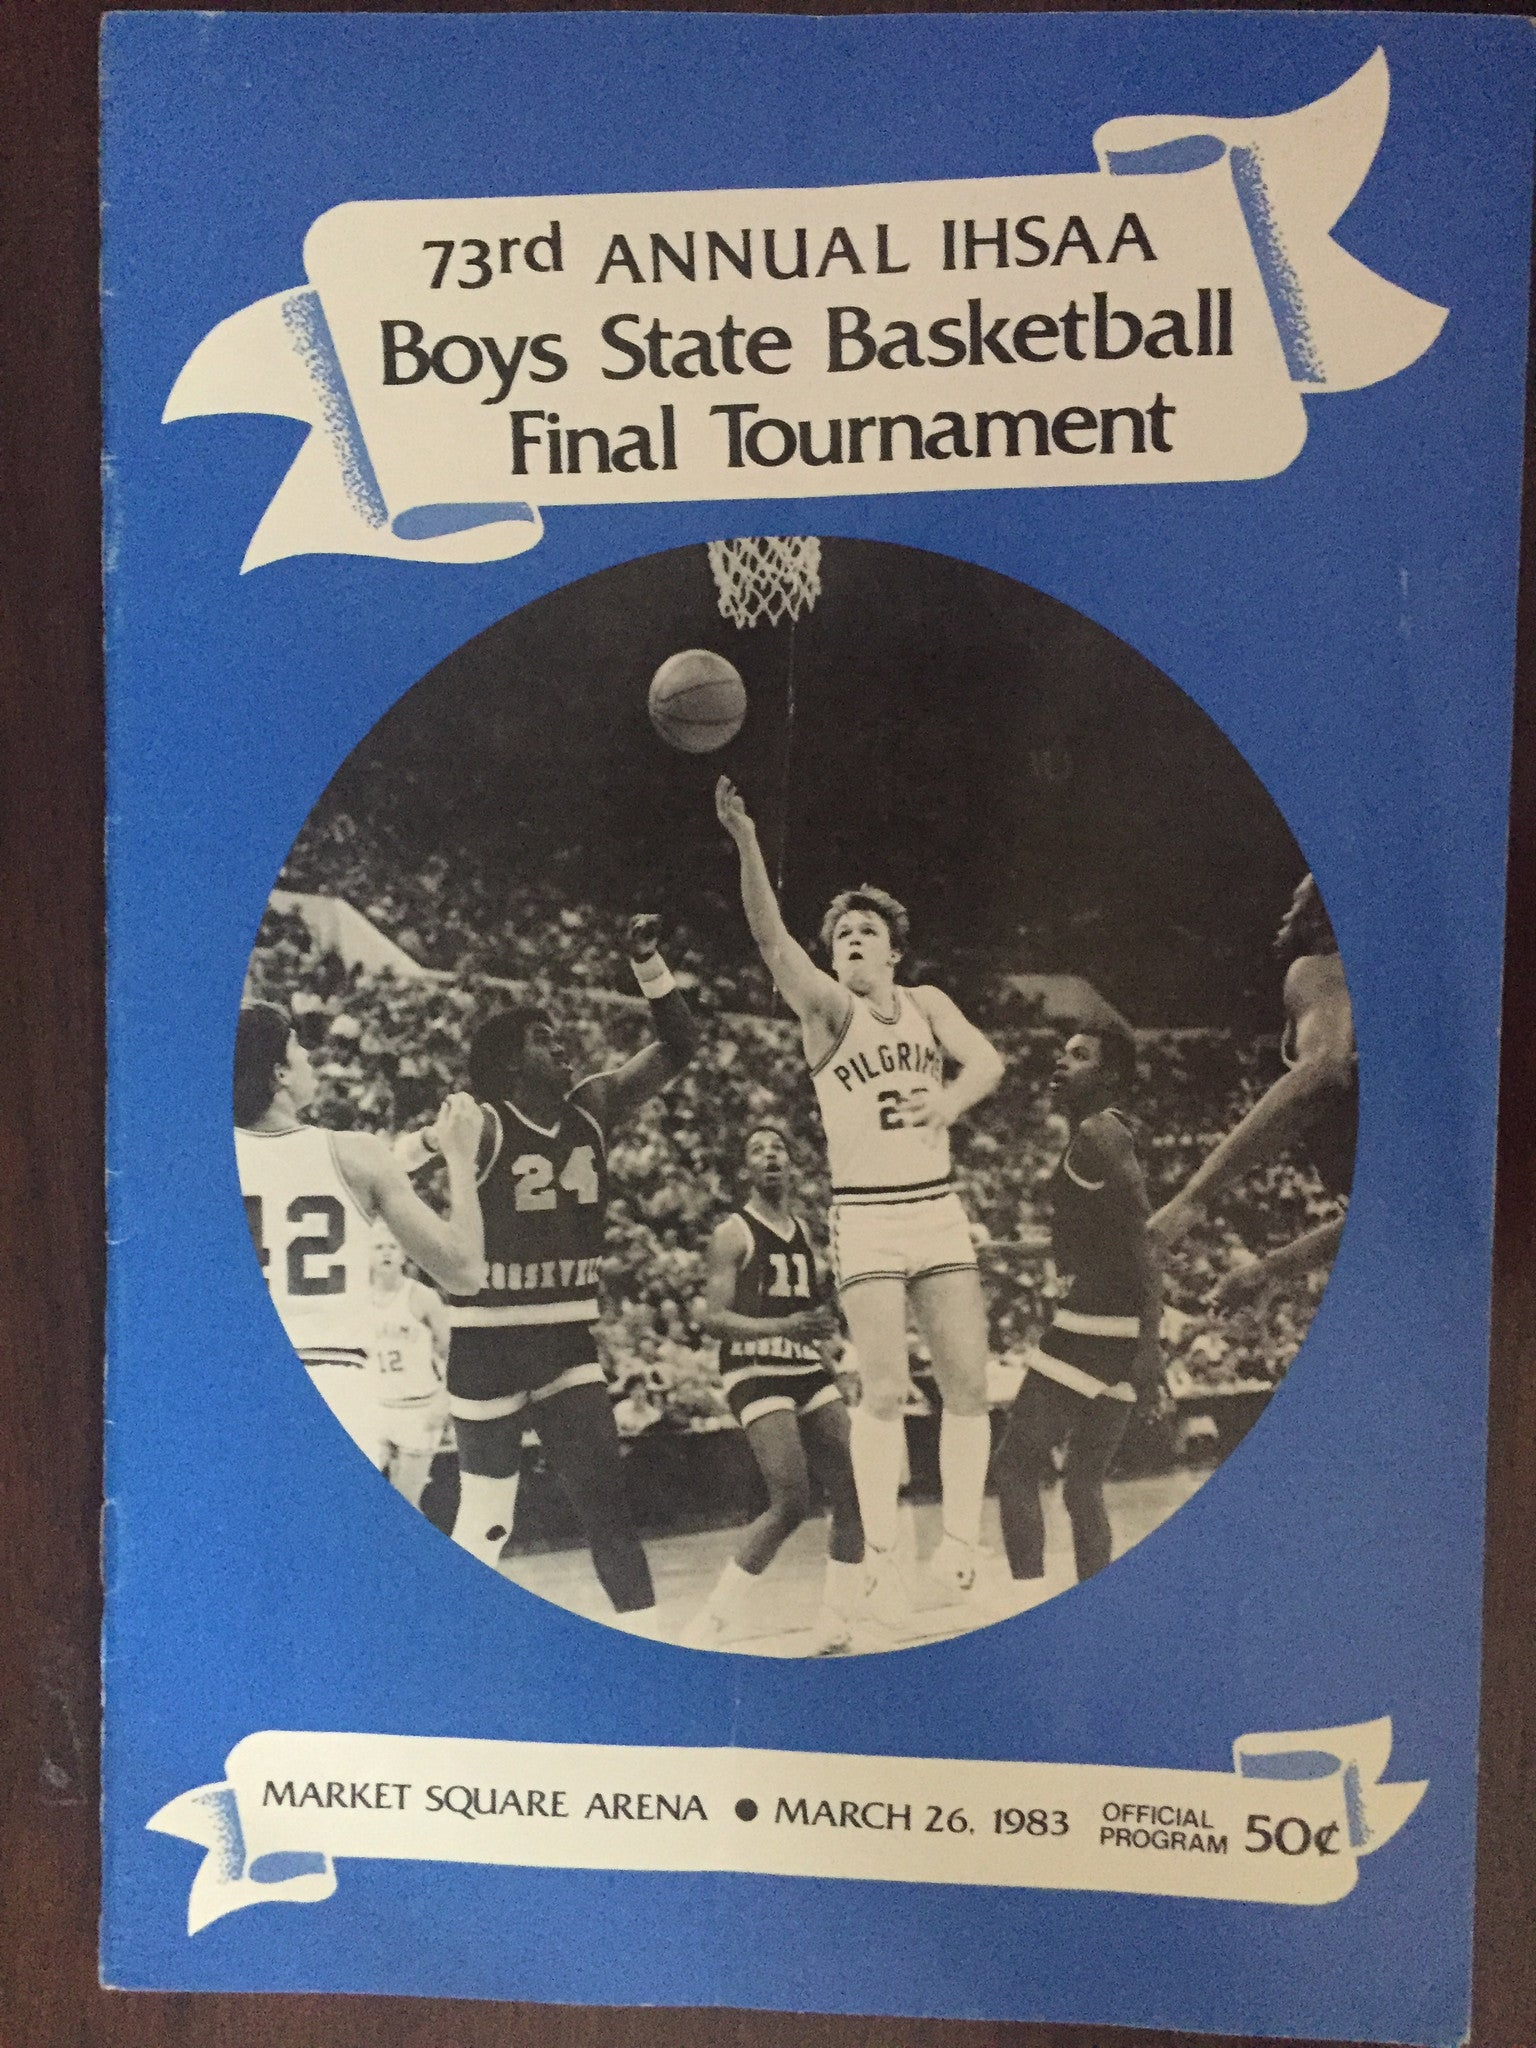 1983 Indiana High School Basketball State Finals Program - Vintage Indy Sports